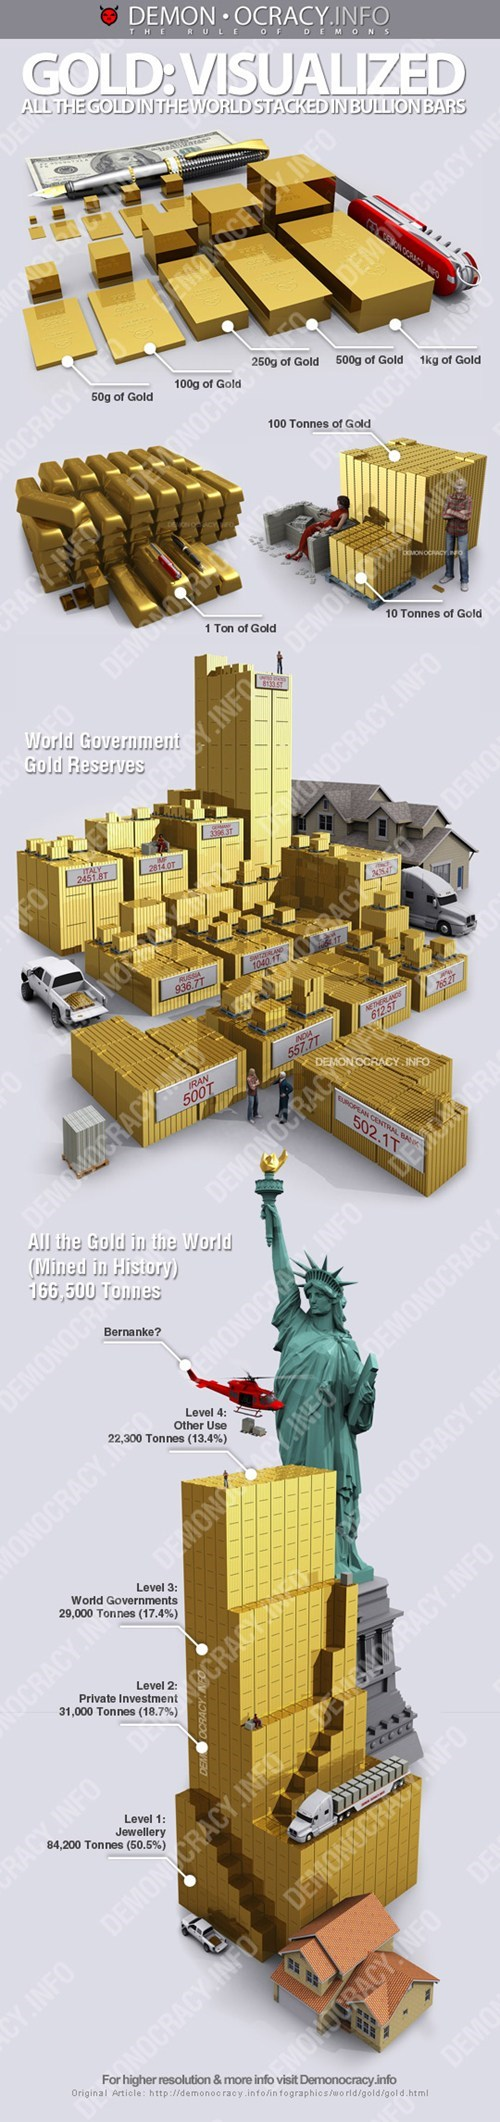 world gold wealth infographic money